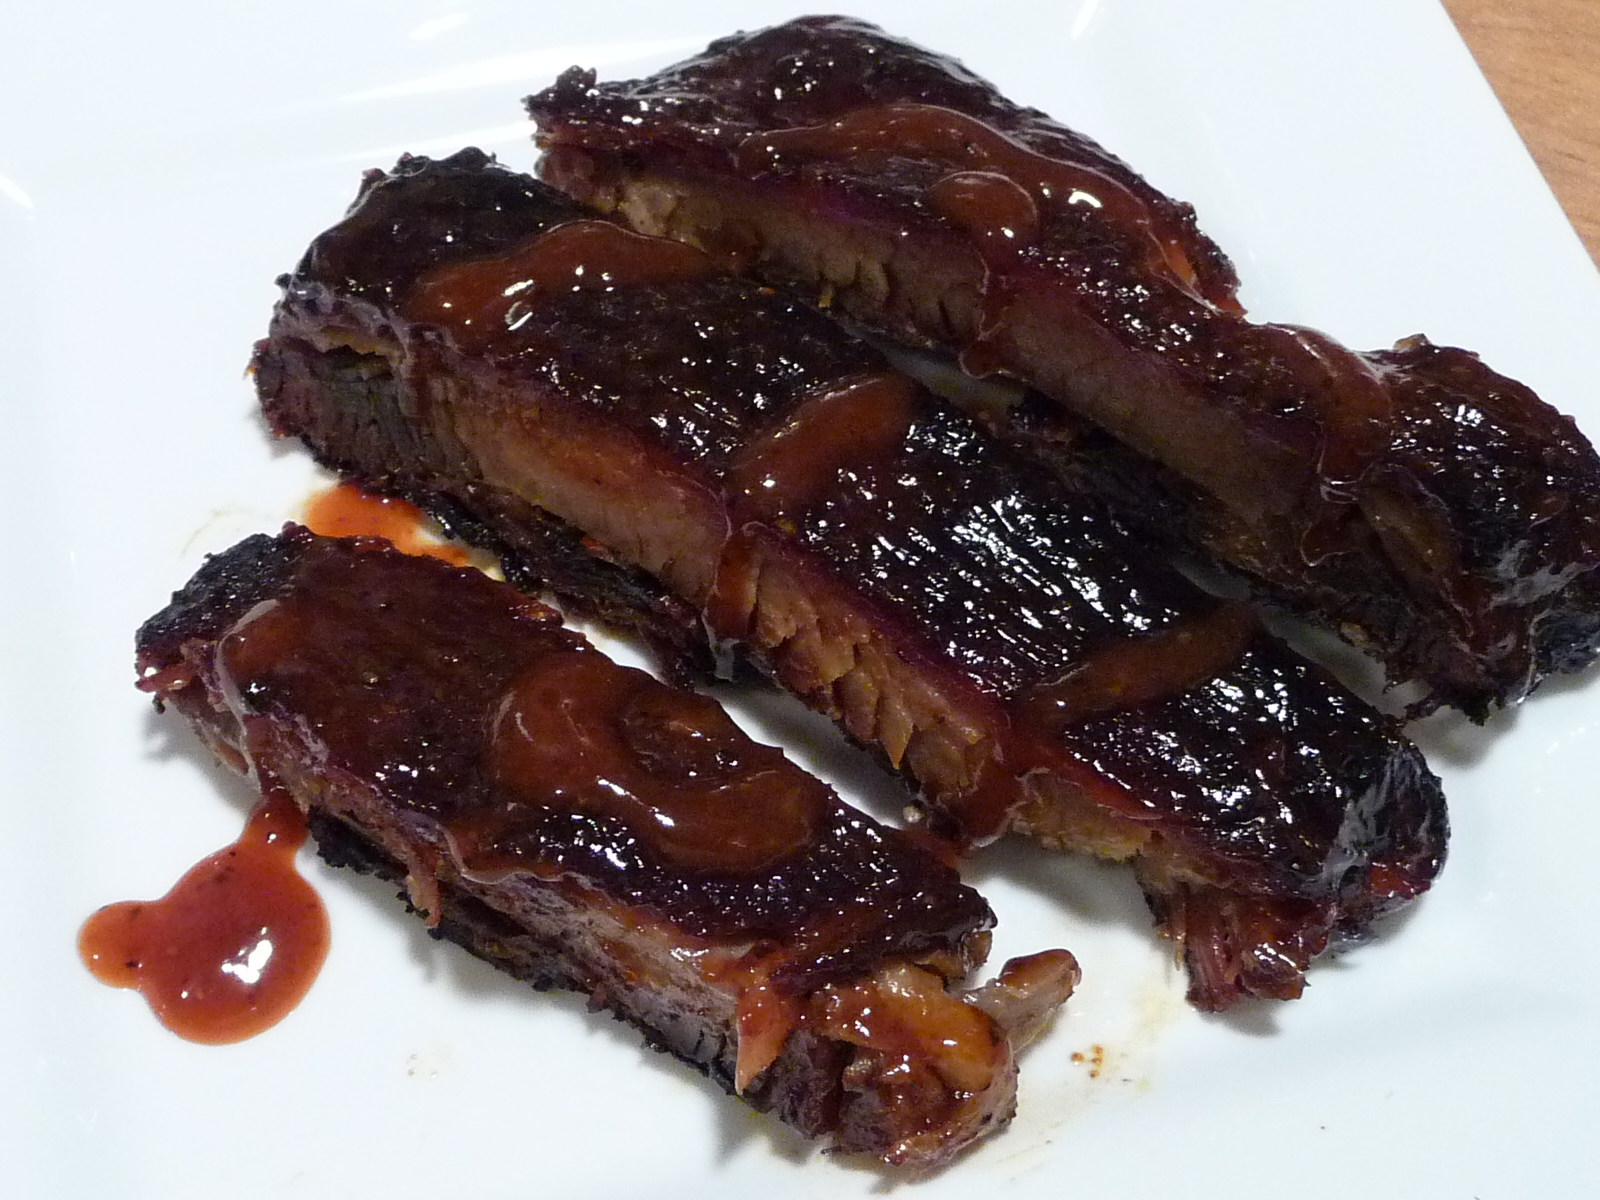 Smoked Ribs with Kramer's BBQ Sauce drizzled on